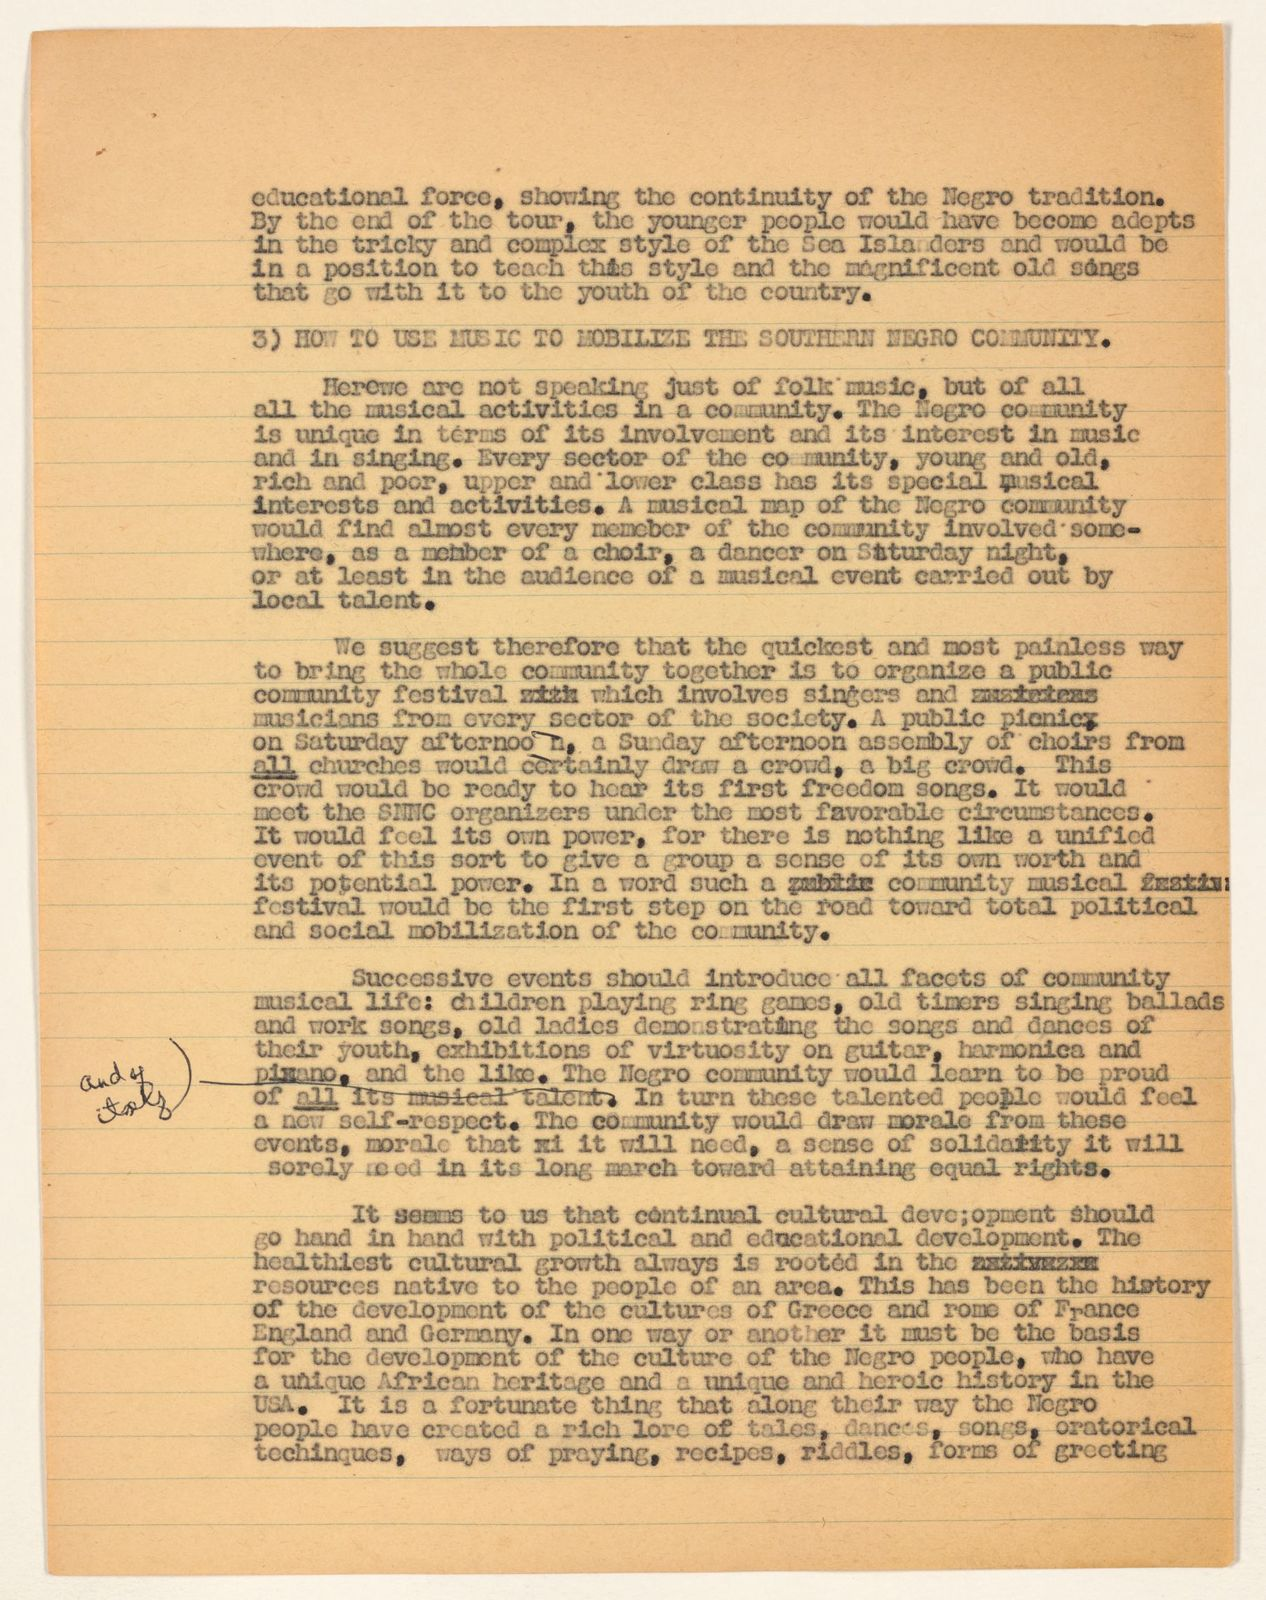 Alan Lomax Collection, Manuscripts, Negro Folk Songs and the Freedom Movement